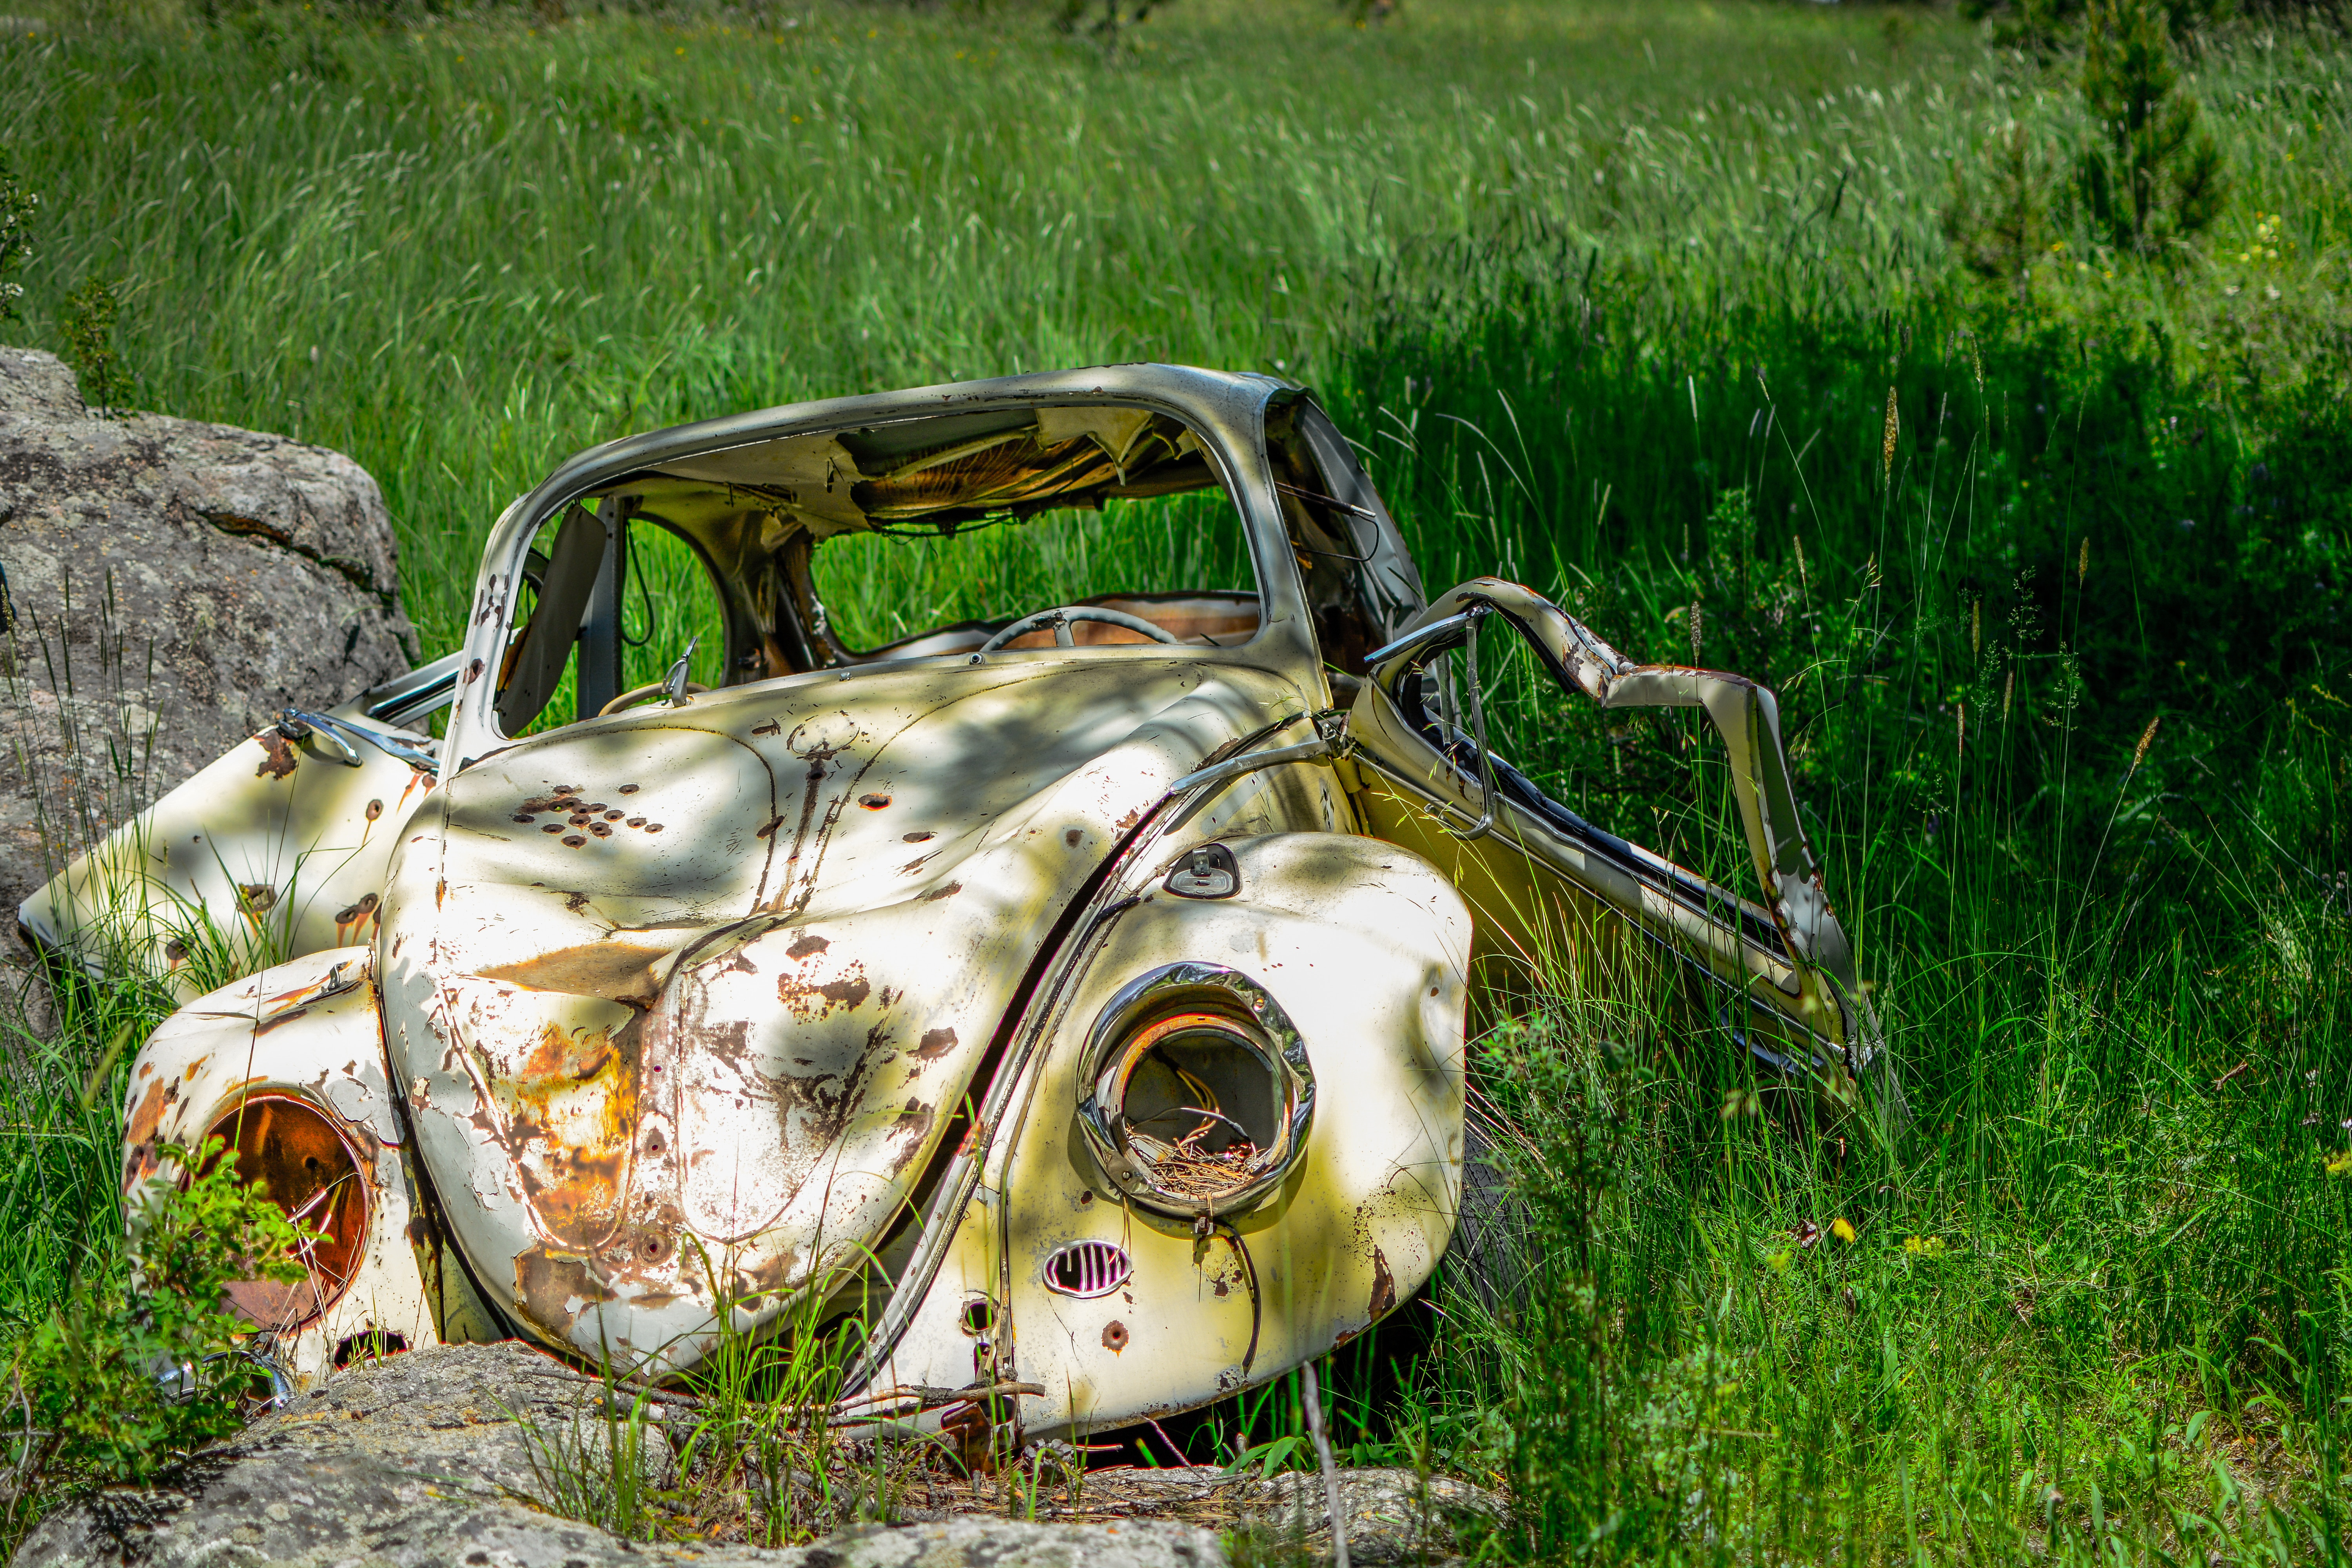 A rusted and abandoned Volkswagen Beetle in a field